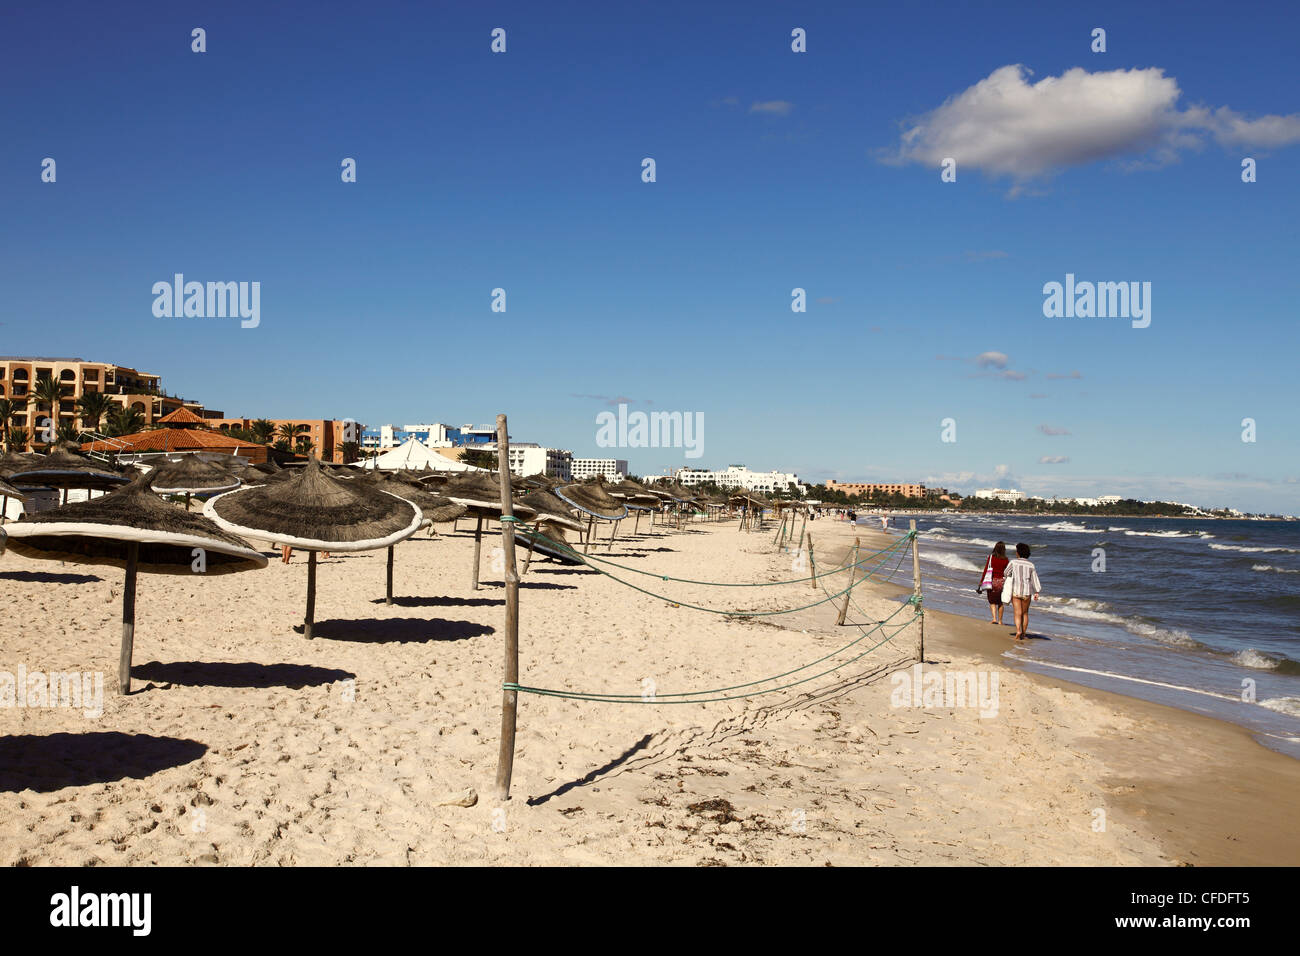 Beach scene in the tourist zone on the Mediterranean Sea, Sousse, Gulf of Hammamet, Tunisia, North Africa, Africa Stock Photo